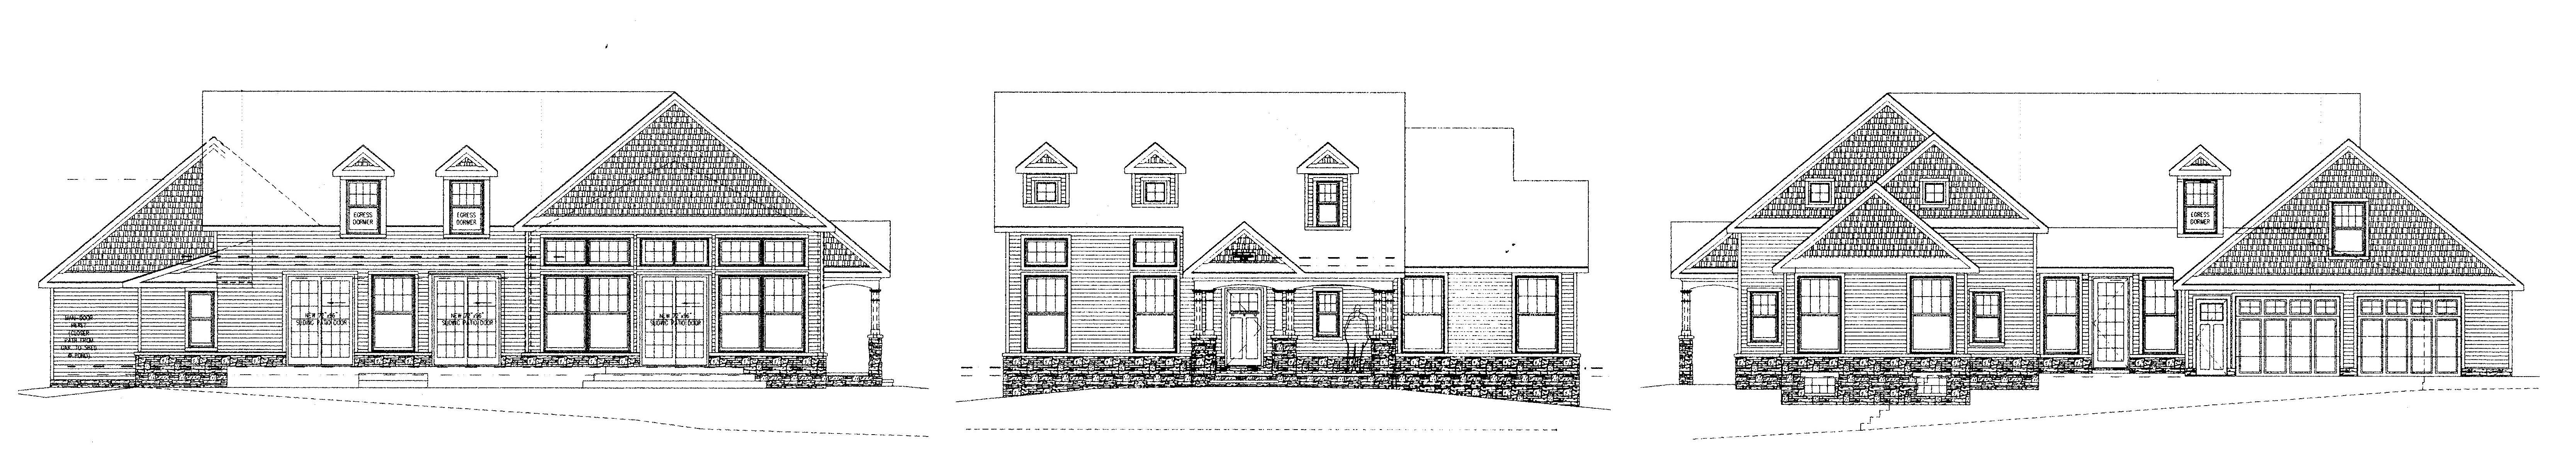 House Front Elevation Materials : Copy of new residence hinckley ohio